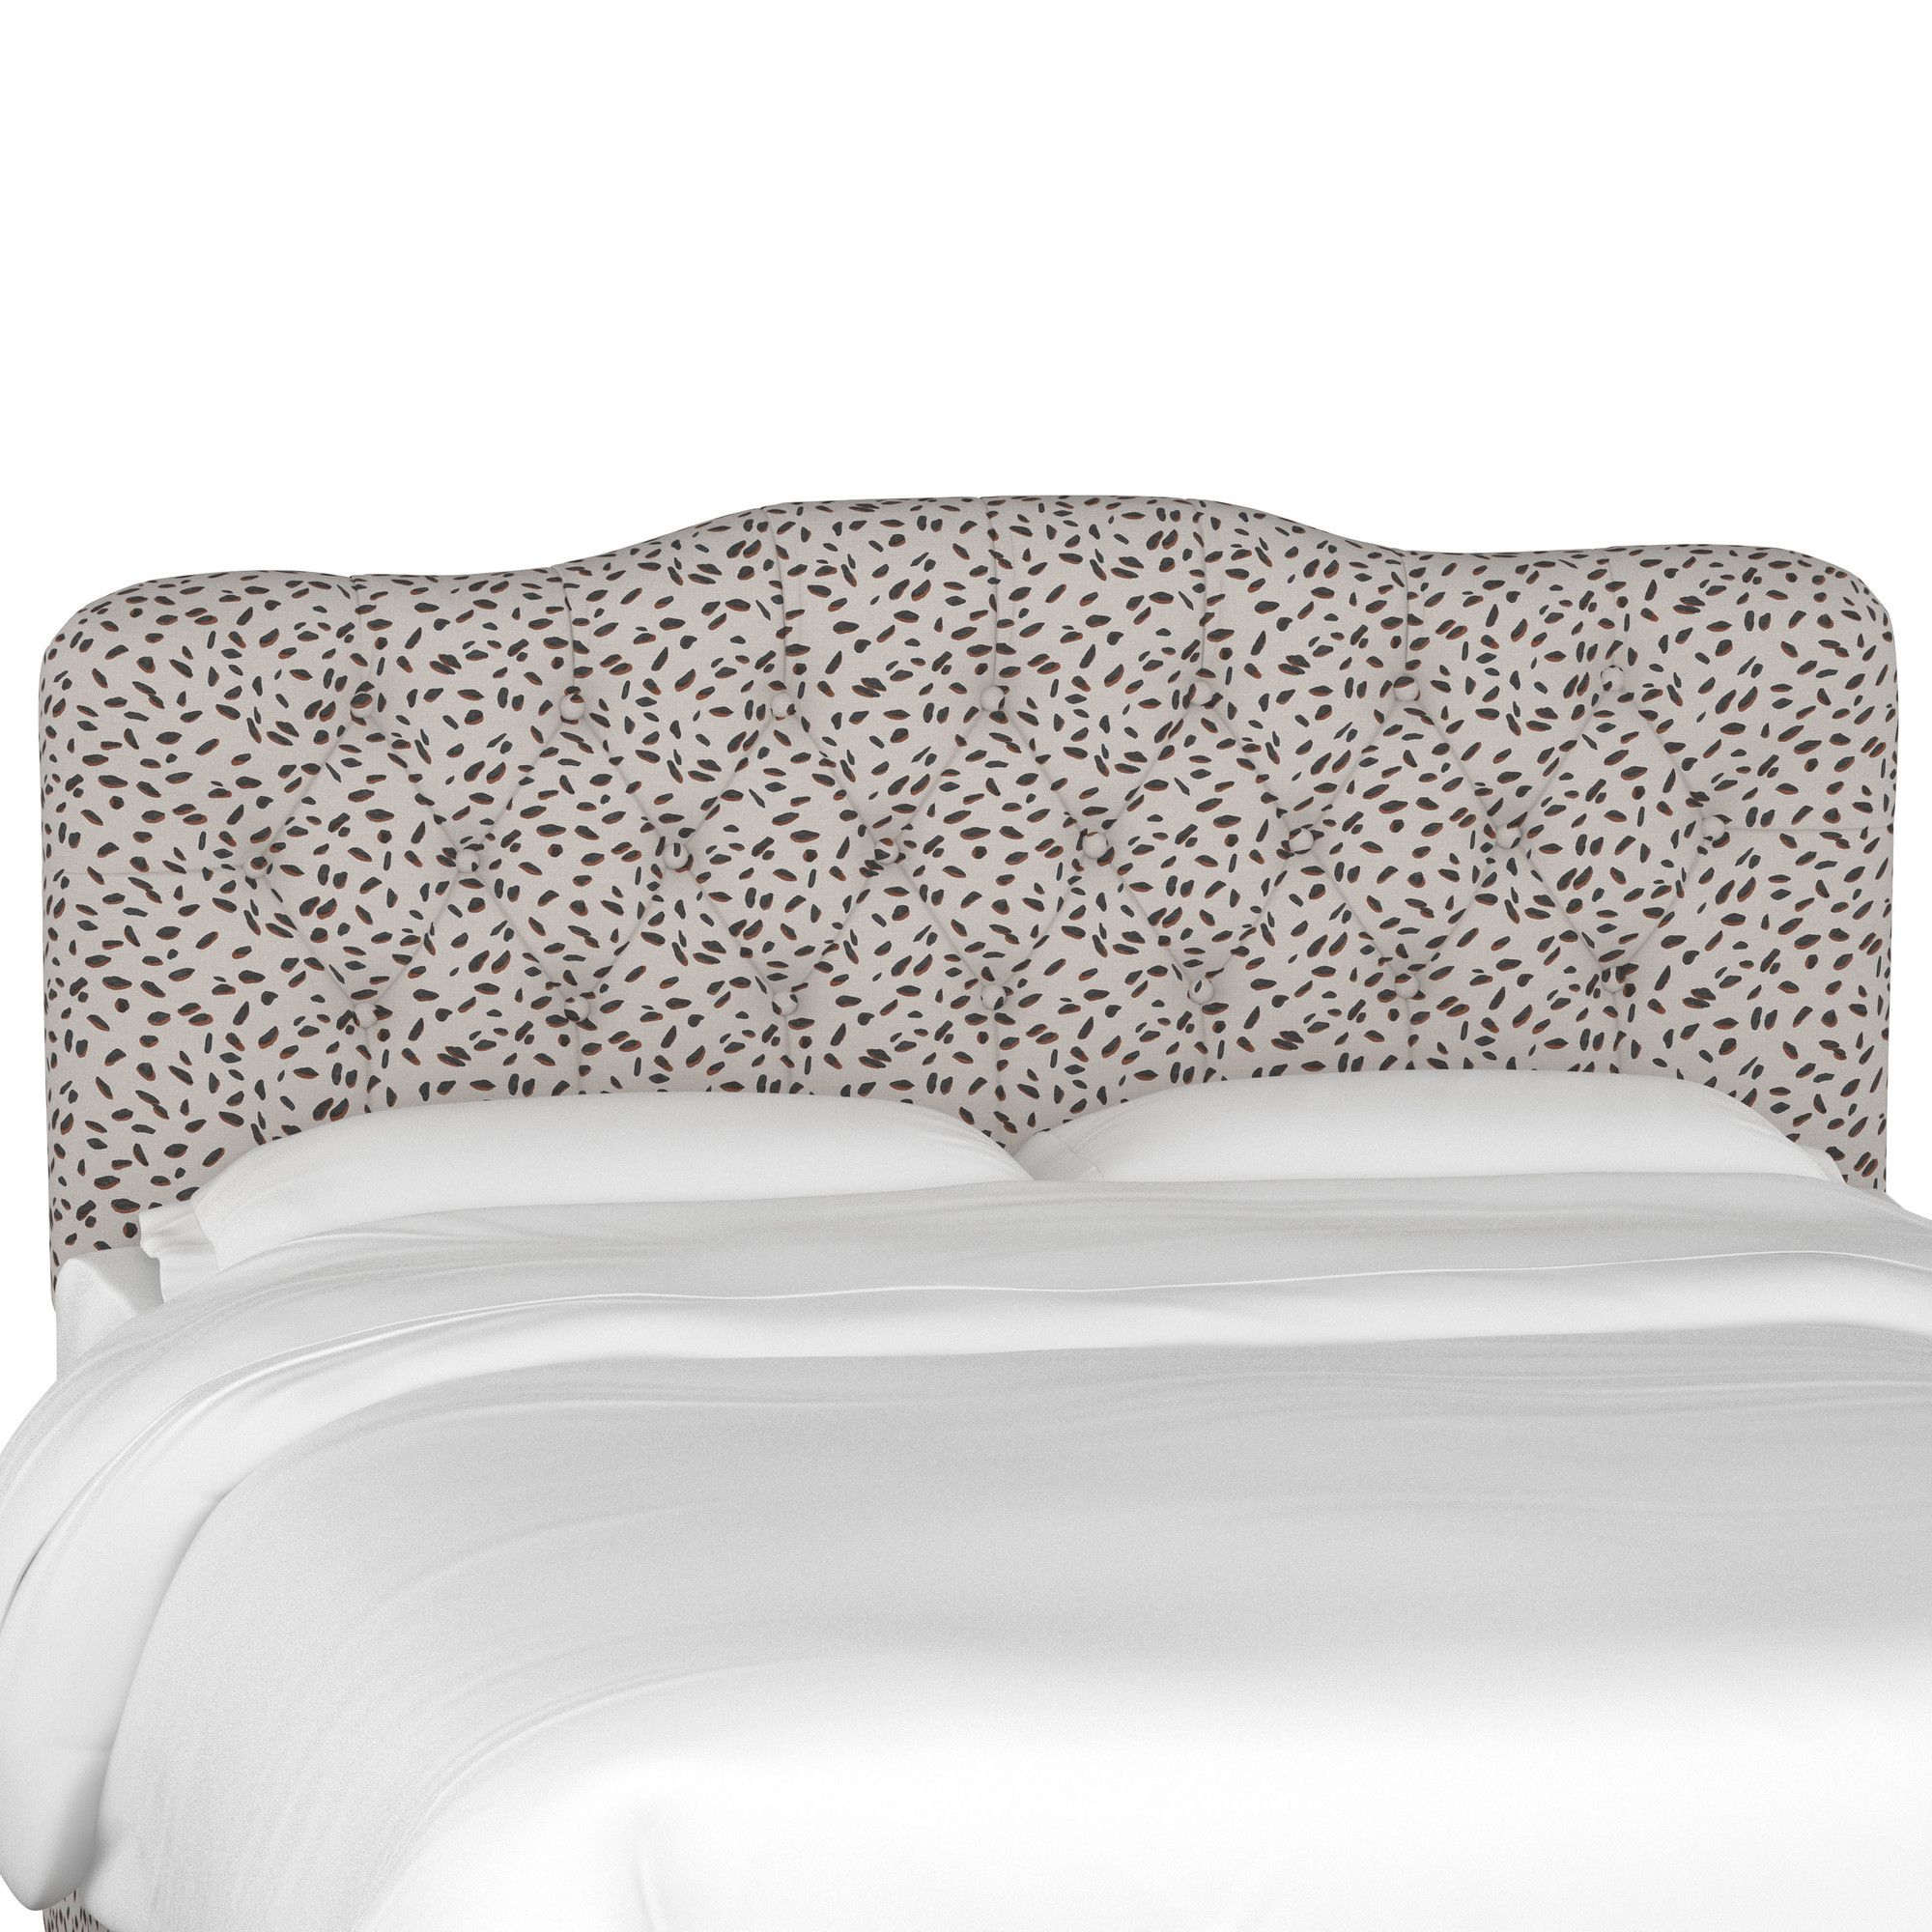 Alcock Tufted Polyester Upholstered Headboard   Products   Pinterest